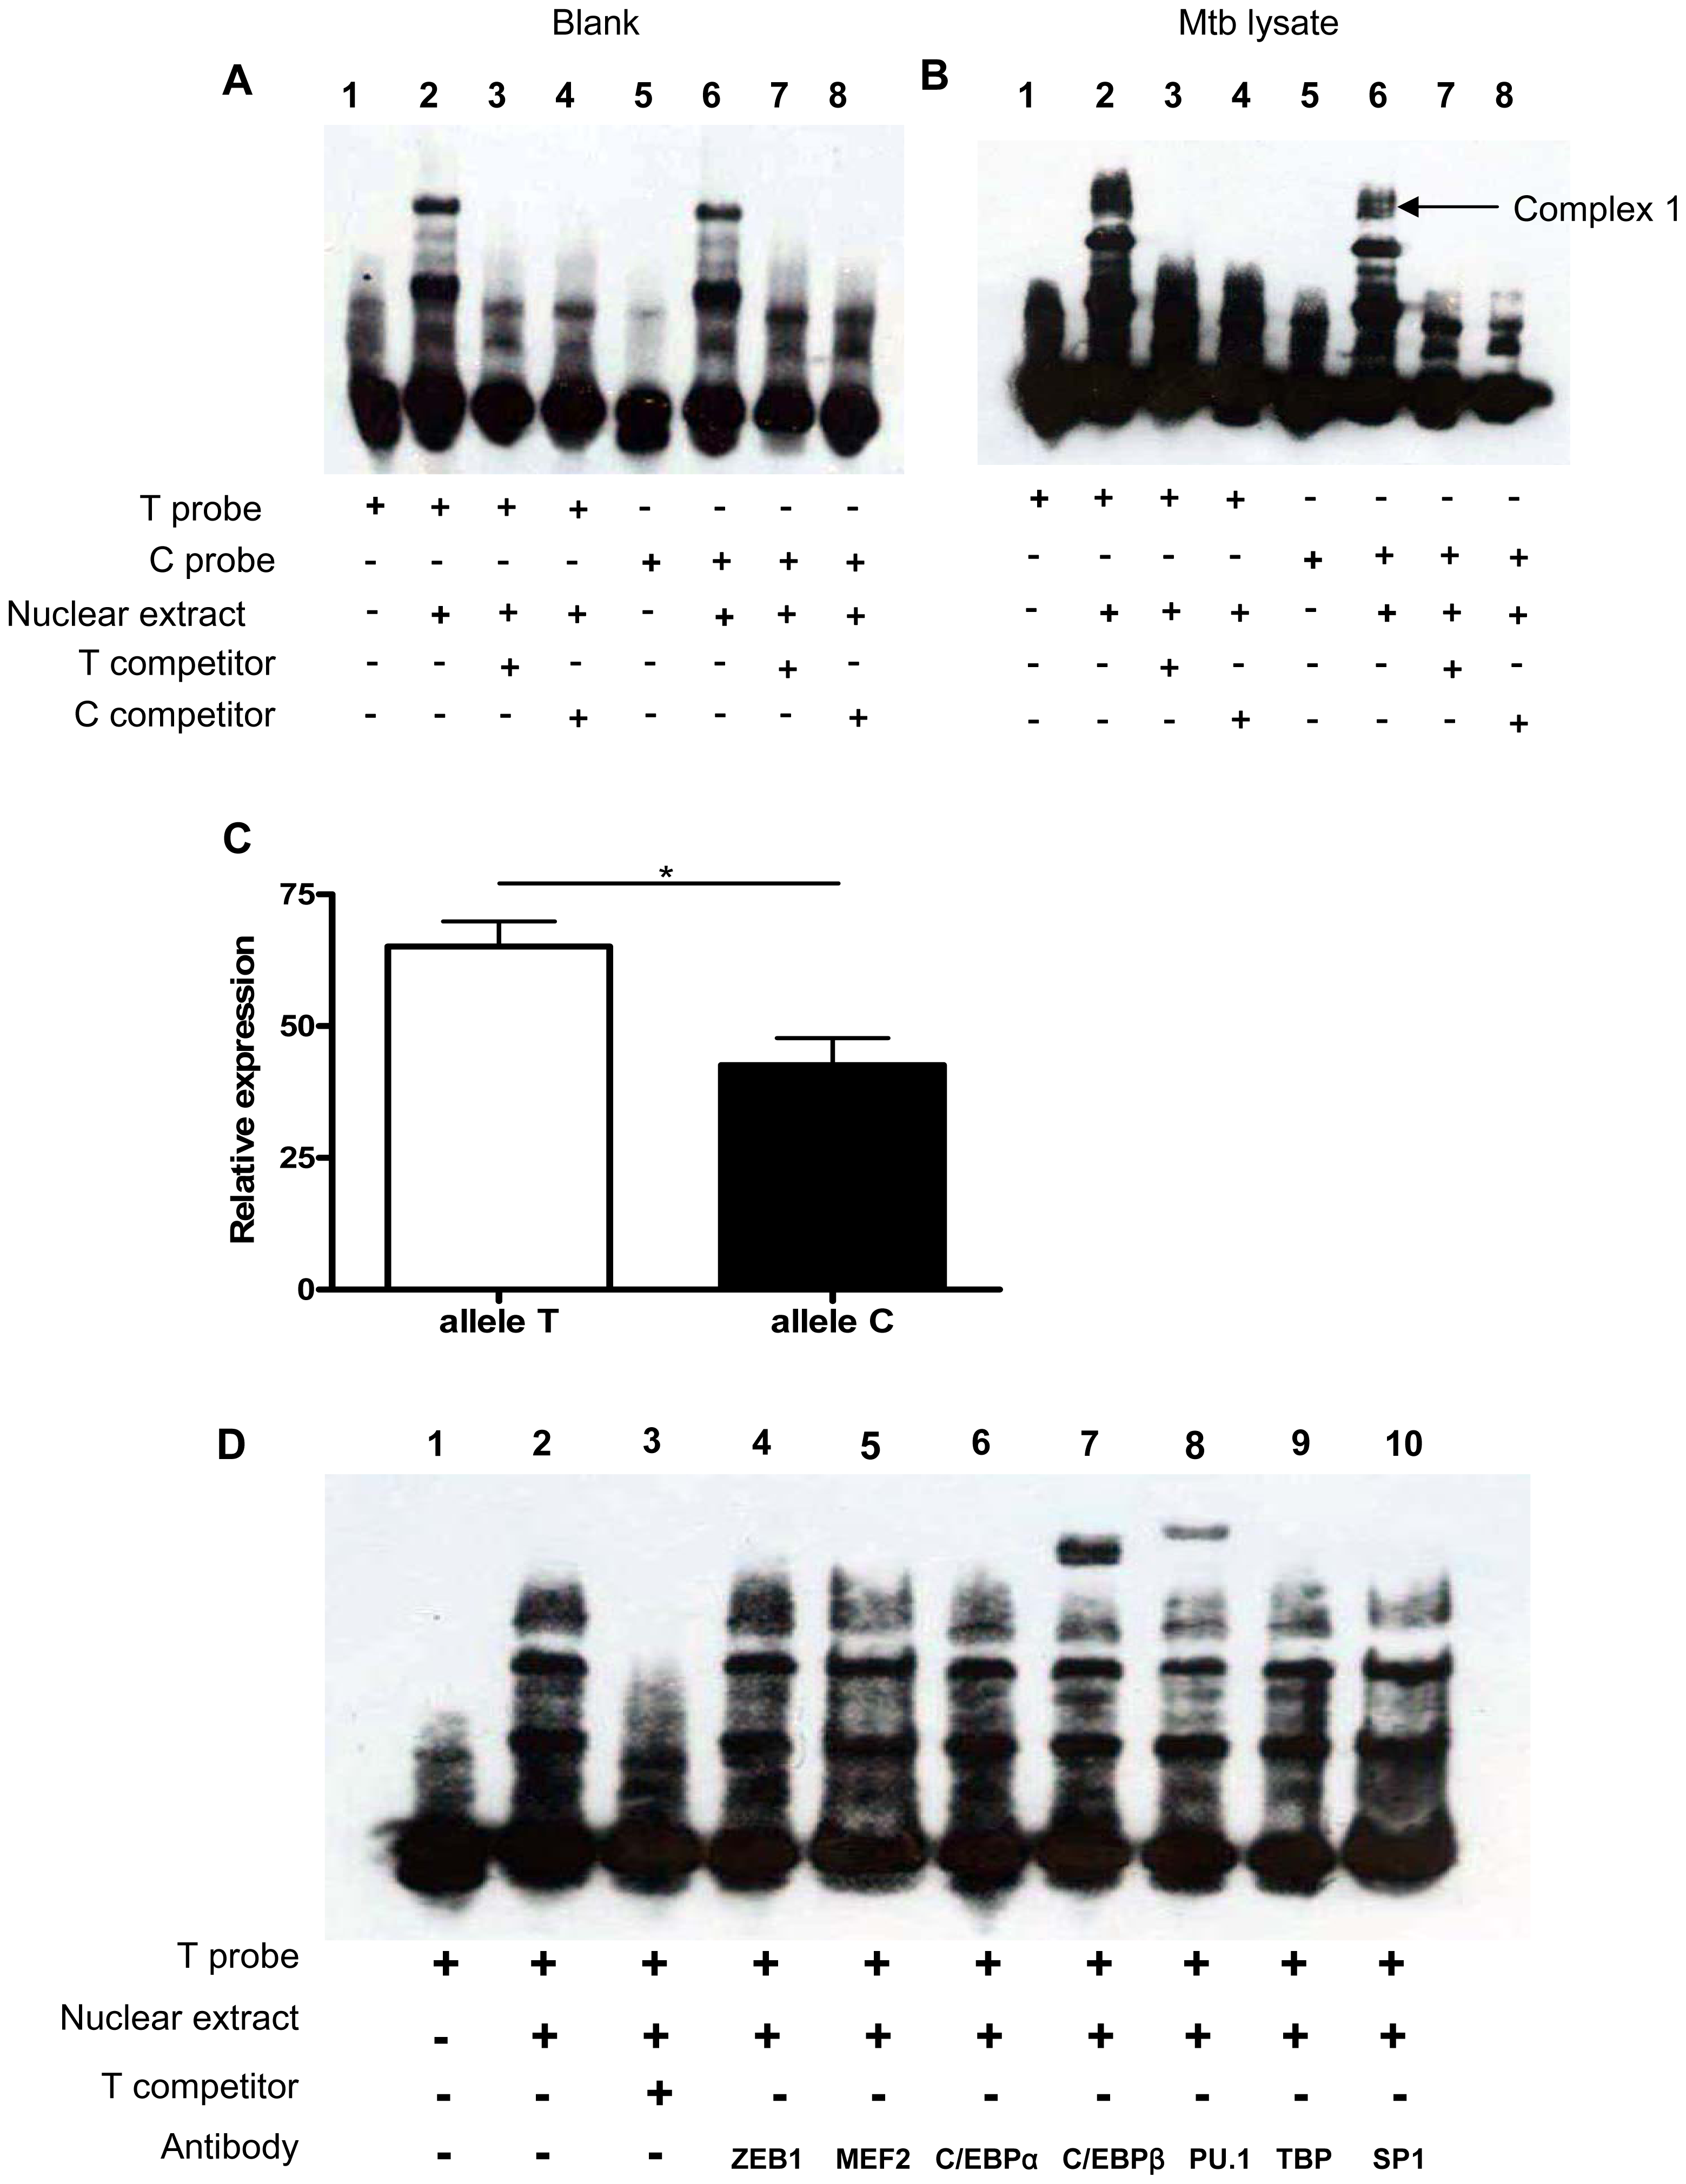 SNP rs1143627 variant affects C/EBPβ and PU.1 binding to the <i>IL1B</i> promoter.